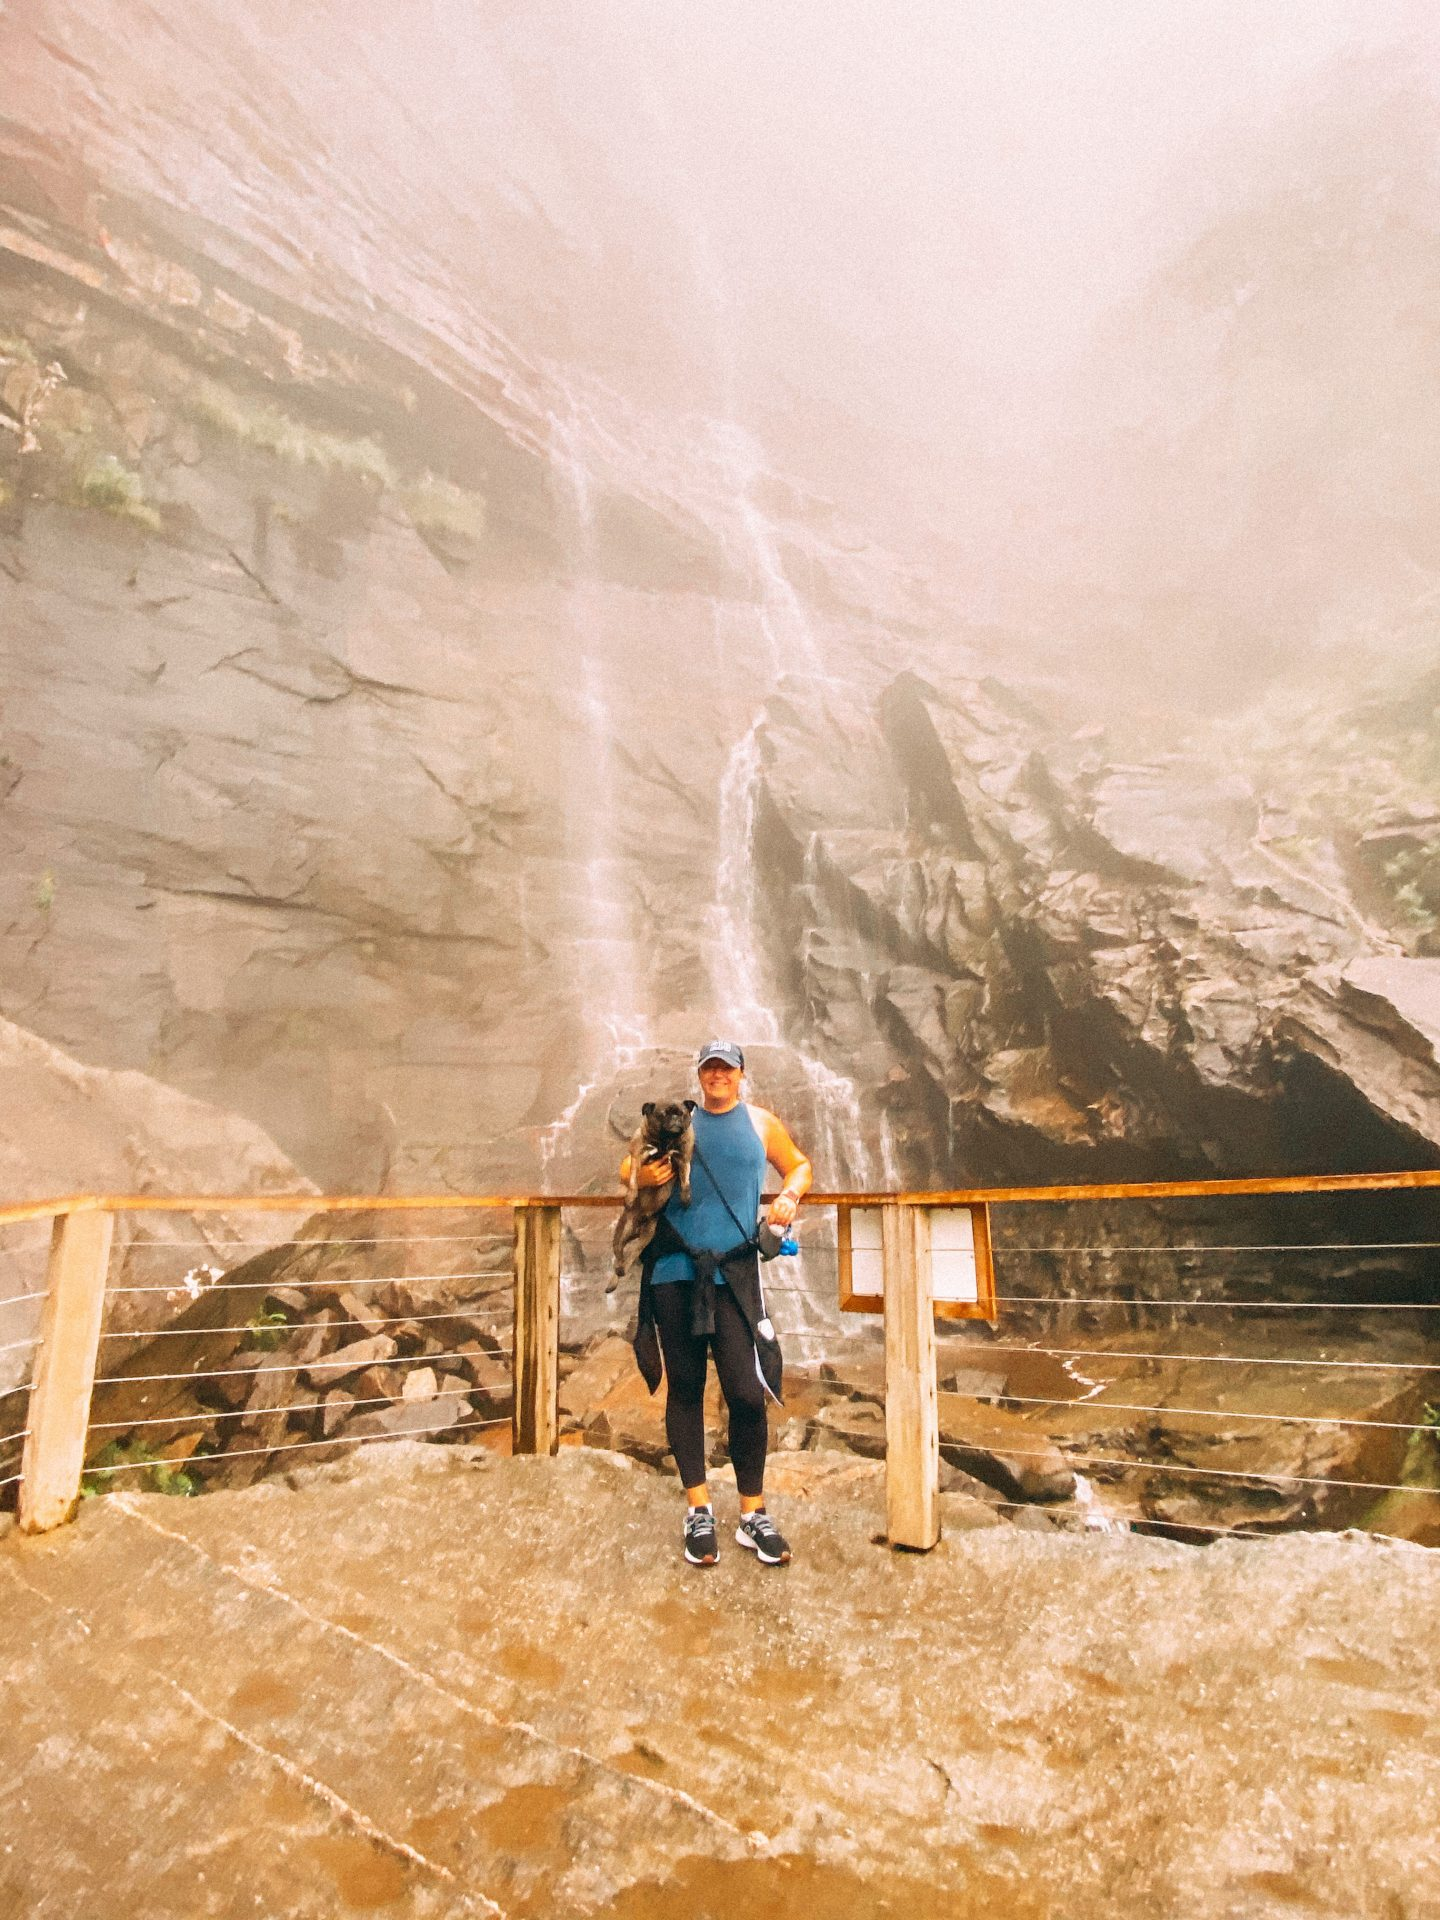 Woman holding a dog with a waterfall behind them while hiking at chimney rock state park in north carolina